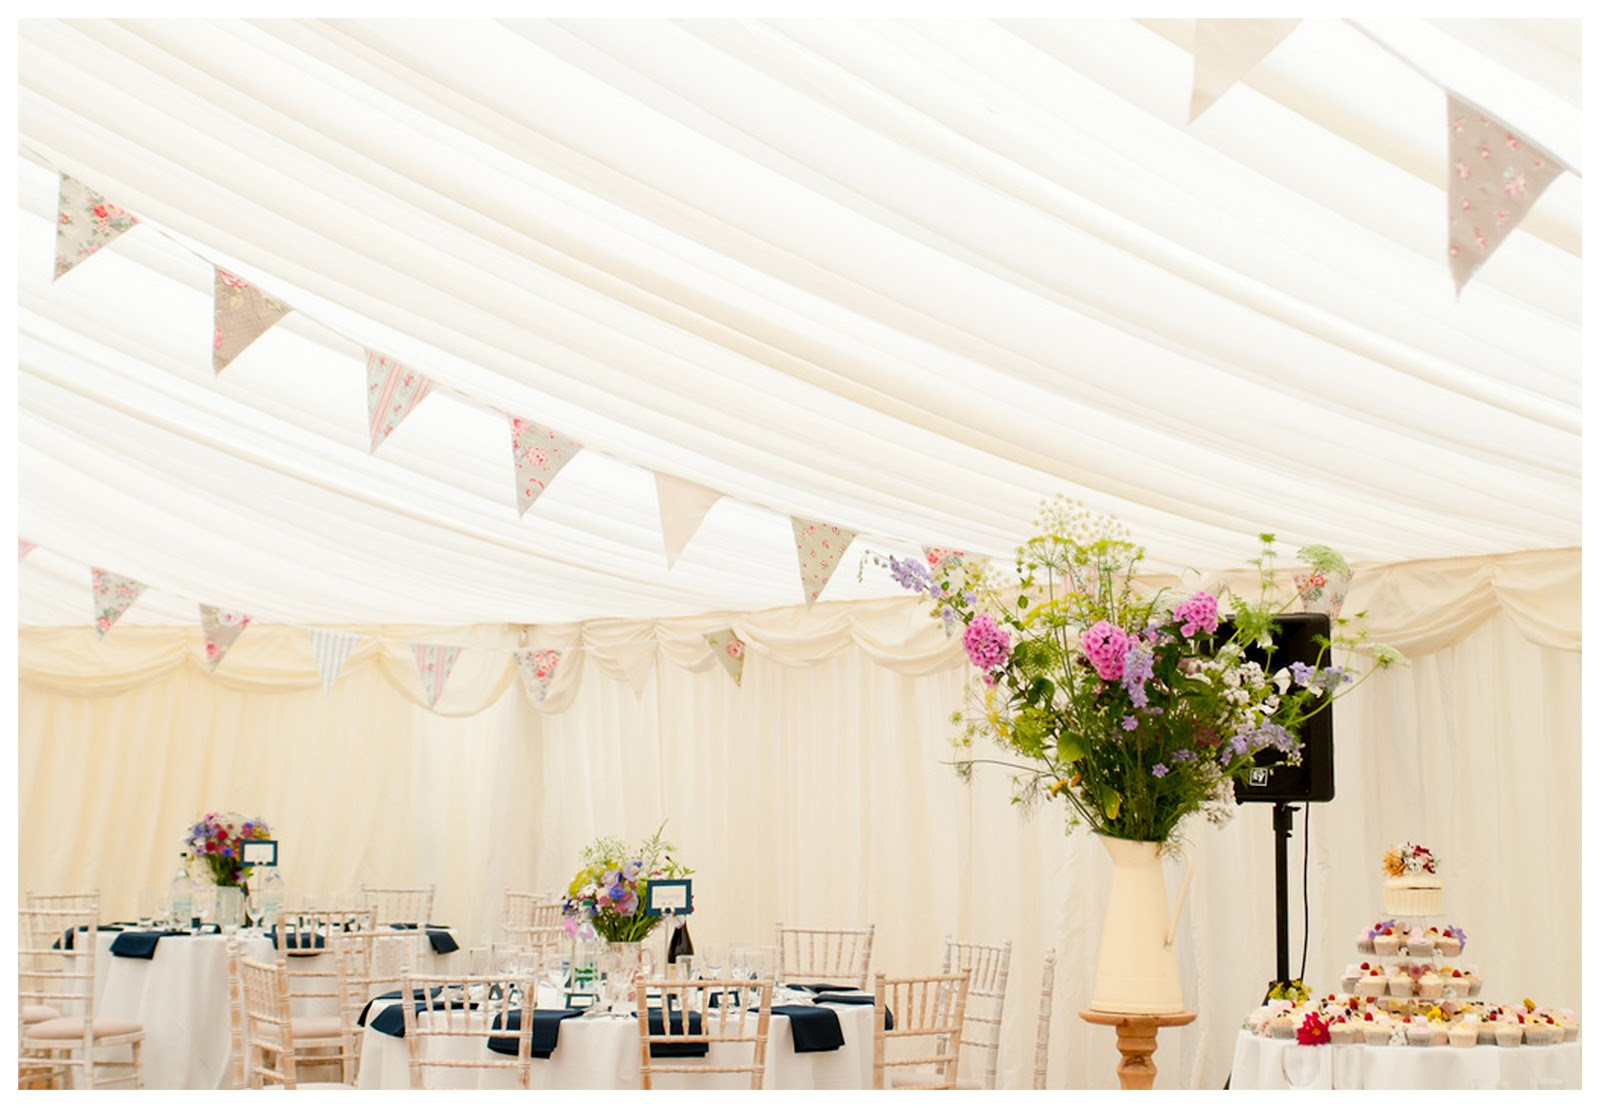 Wedding Marquee Decoration Ideas | Dream House Experience